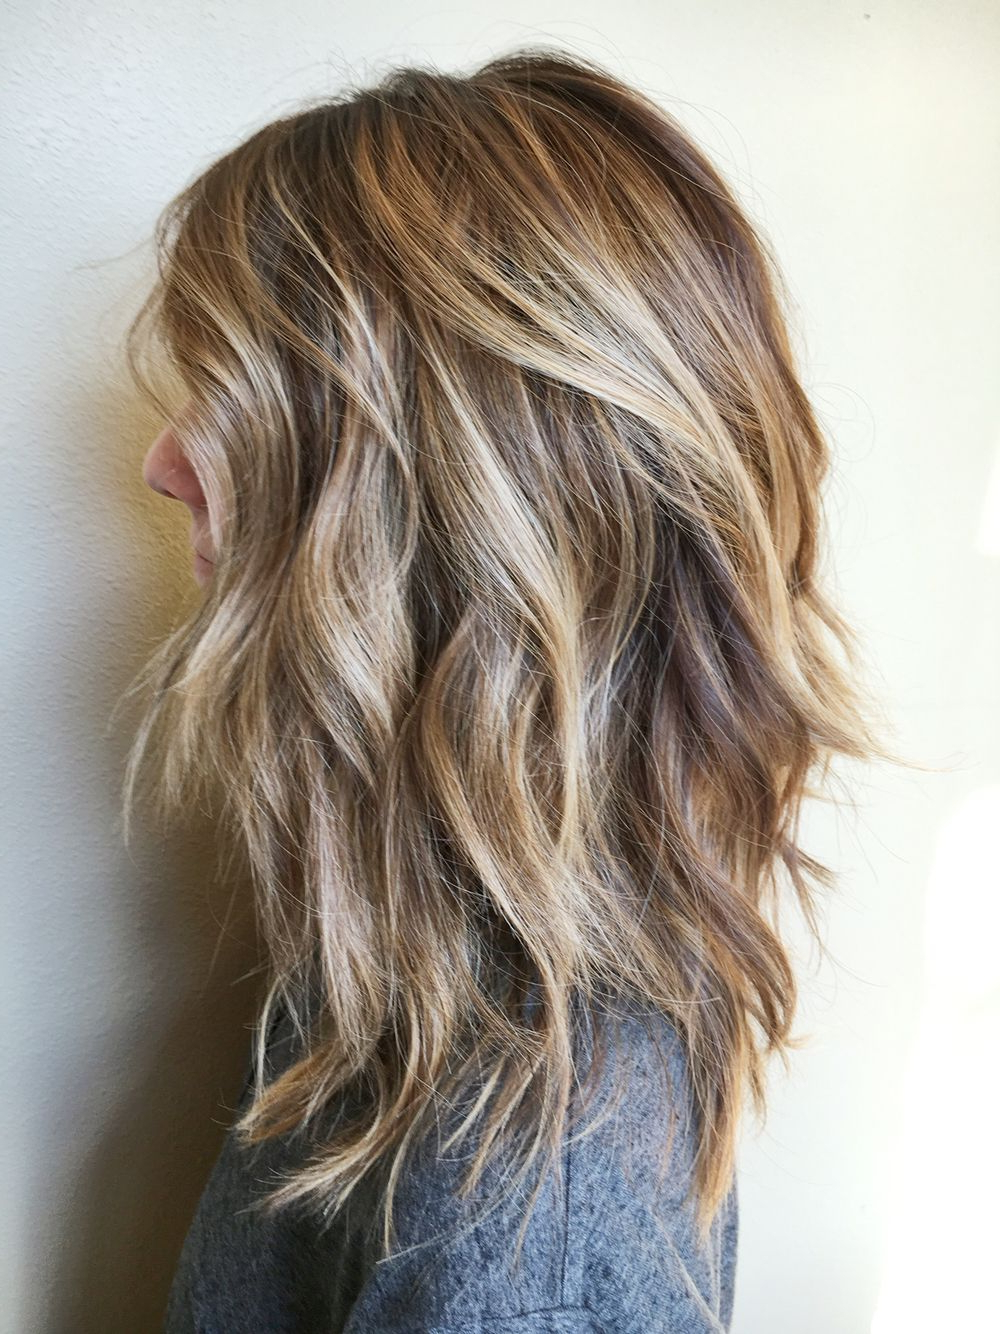 40 Amazing Medium Length Hairstyles & Shoulder Length Haircuts Inside Hairstyles For Long Hair With Short Layers (View 5 of 25)